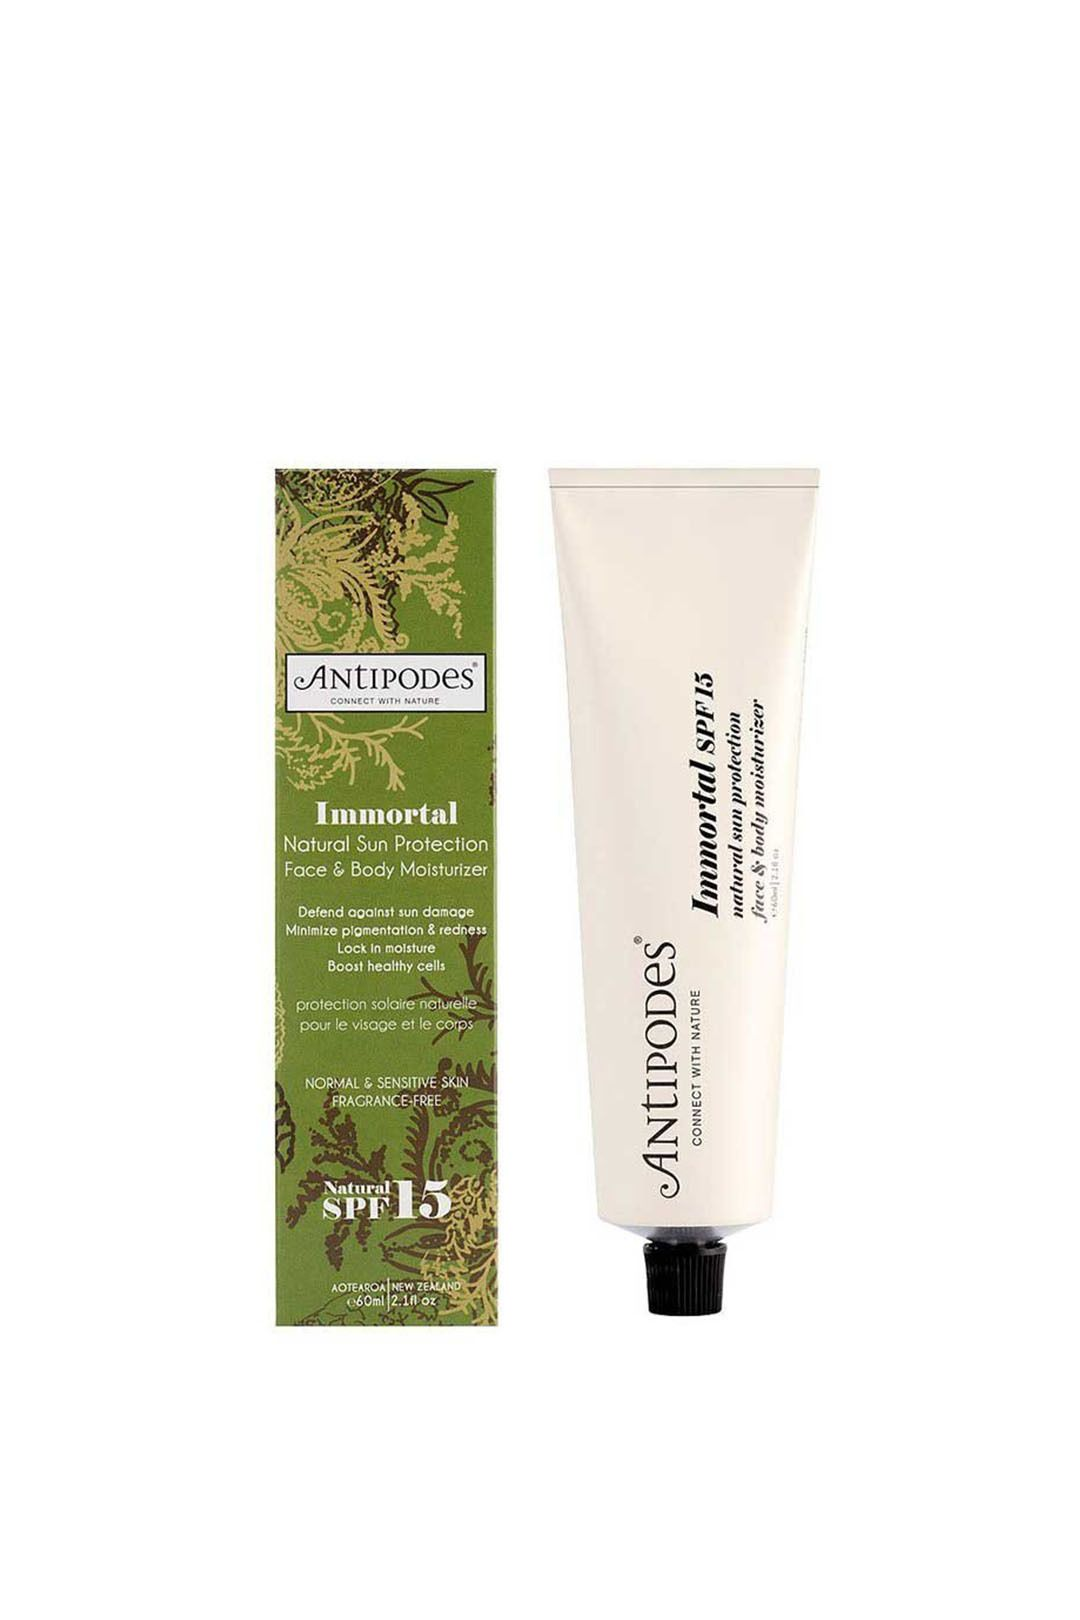 Antipodes-Immortal-SPF-15-Products